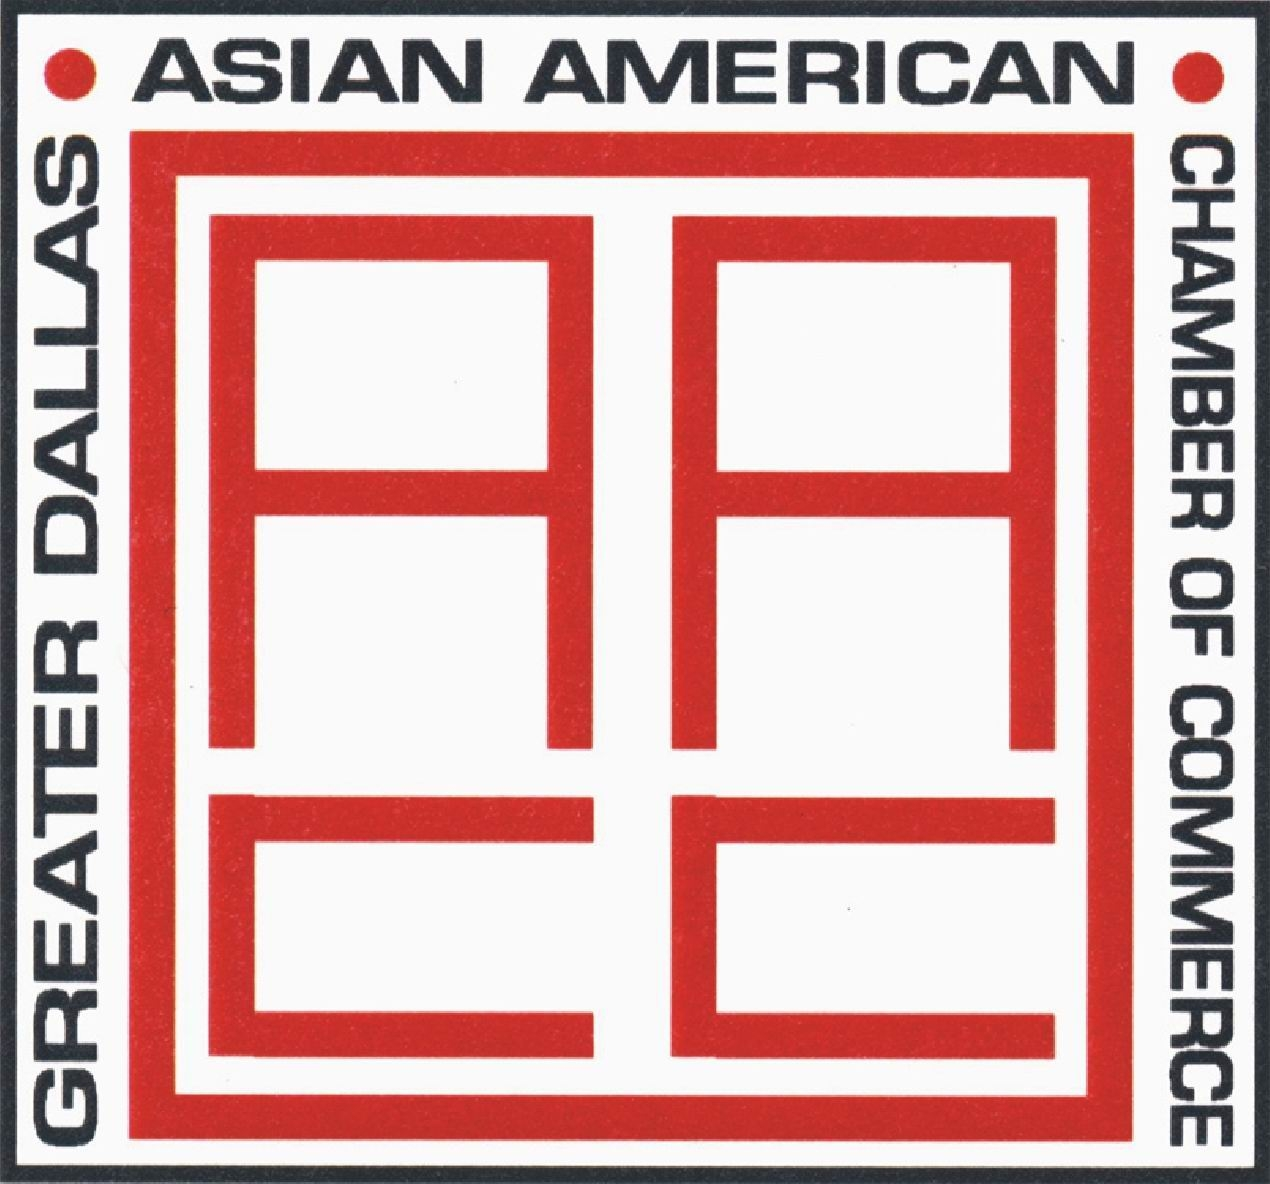 Global chamber dallas dfw greater dallas asian american for American chambre